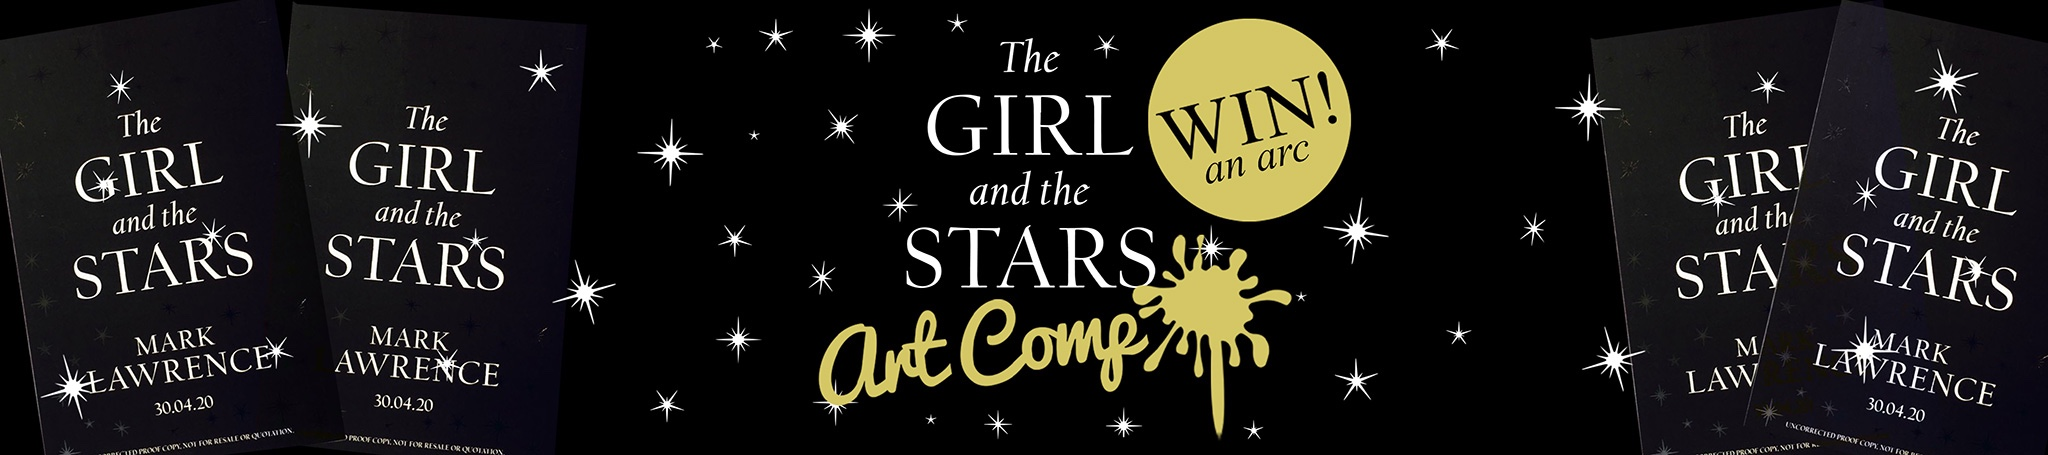 Announcing the winner of the The Girl and the Stars Art Contest